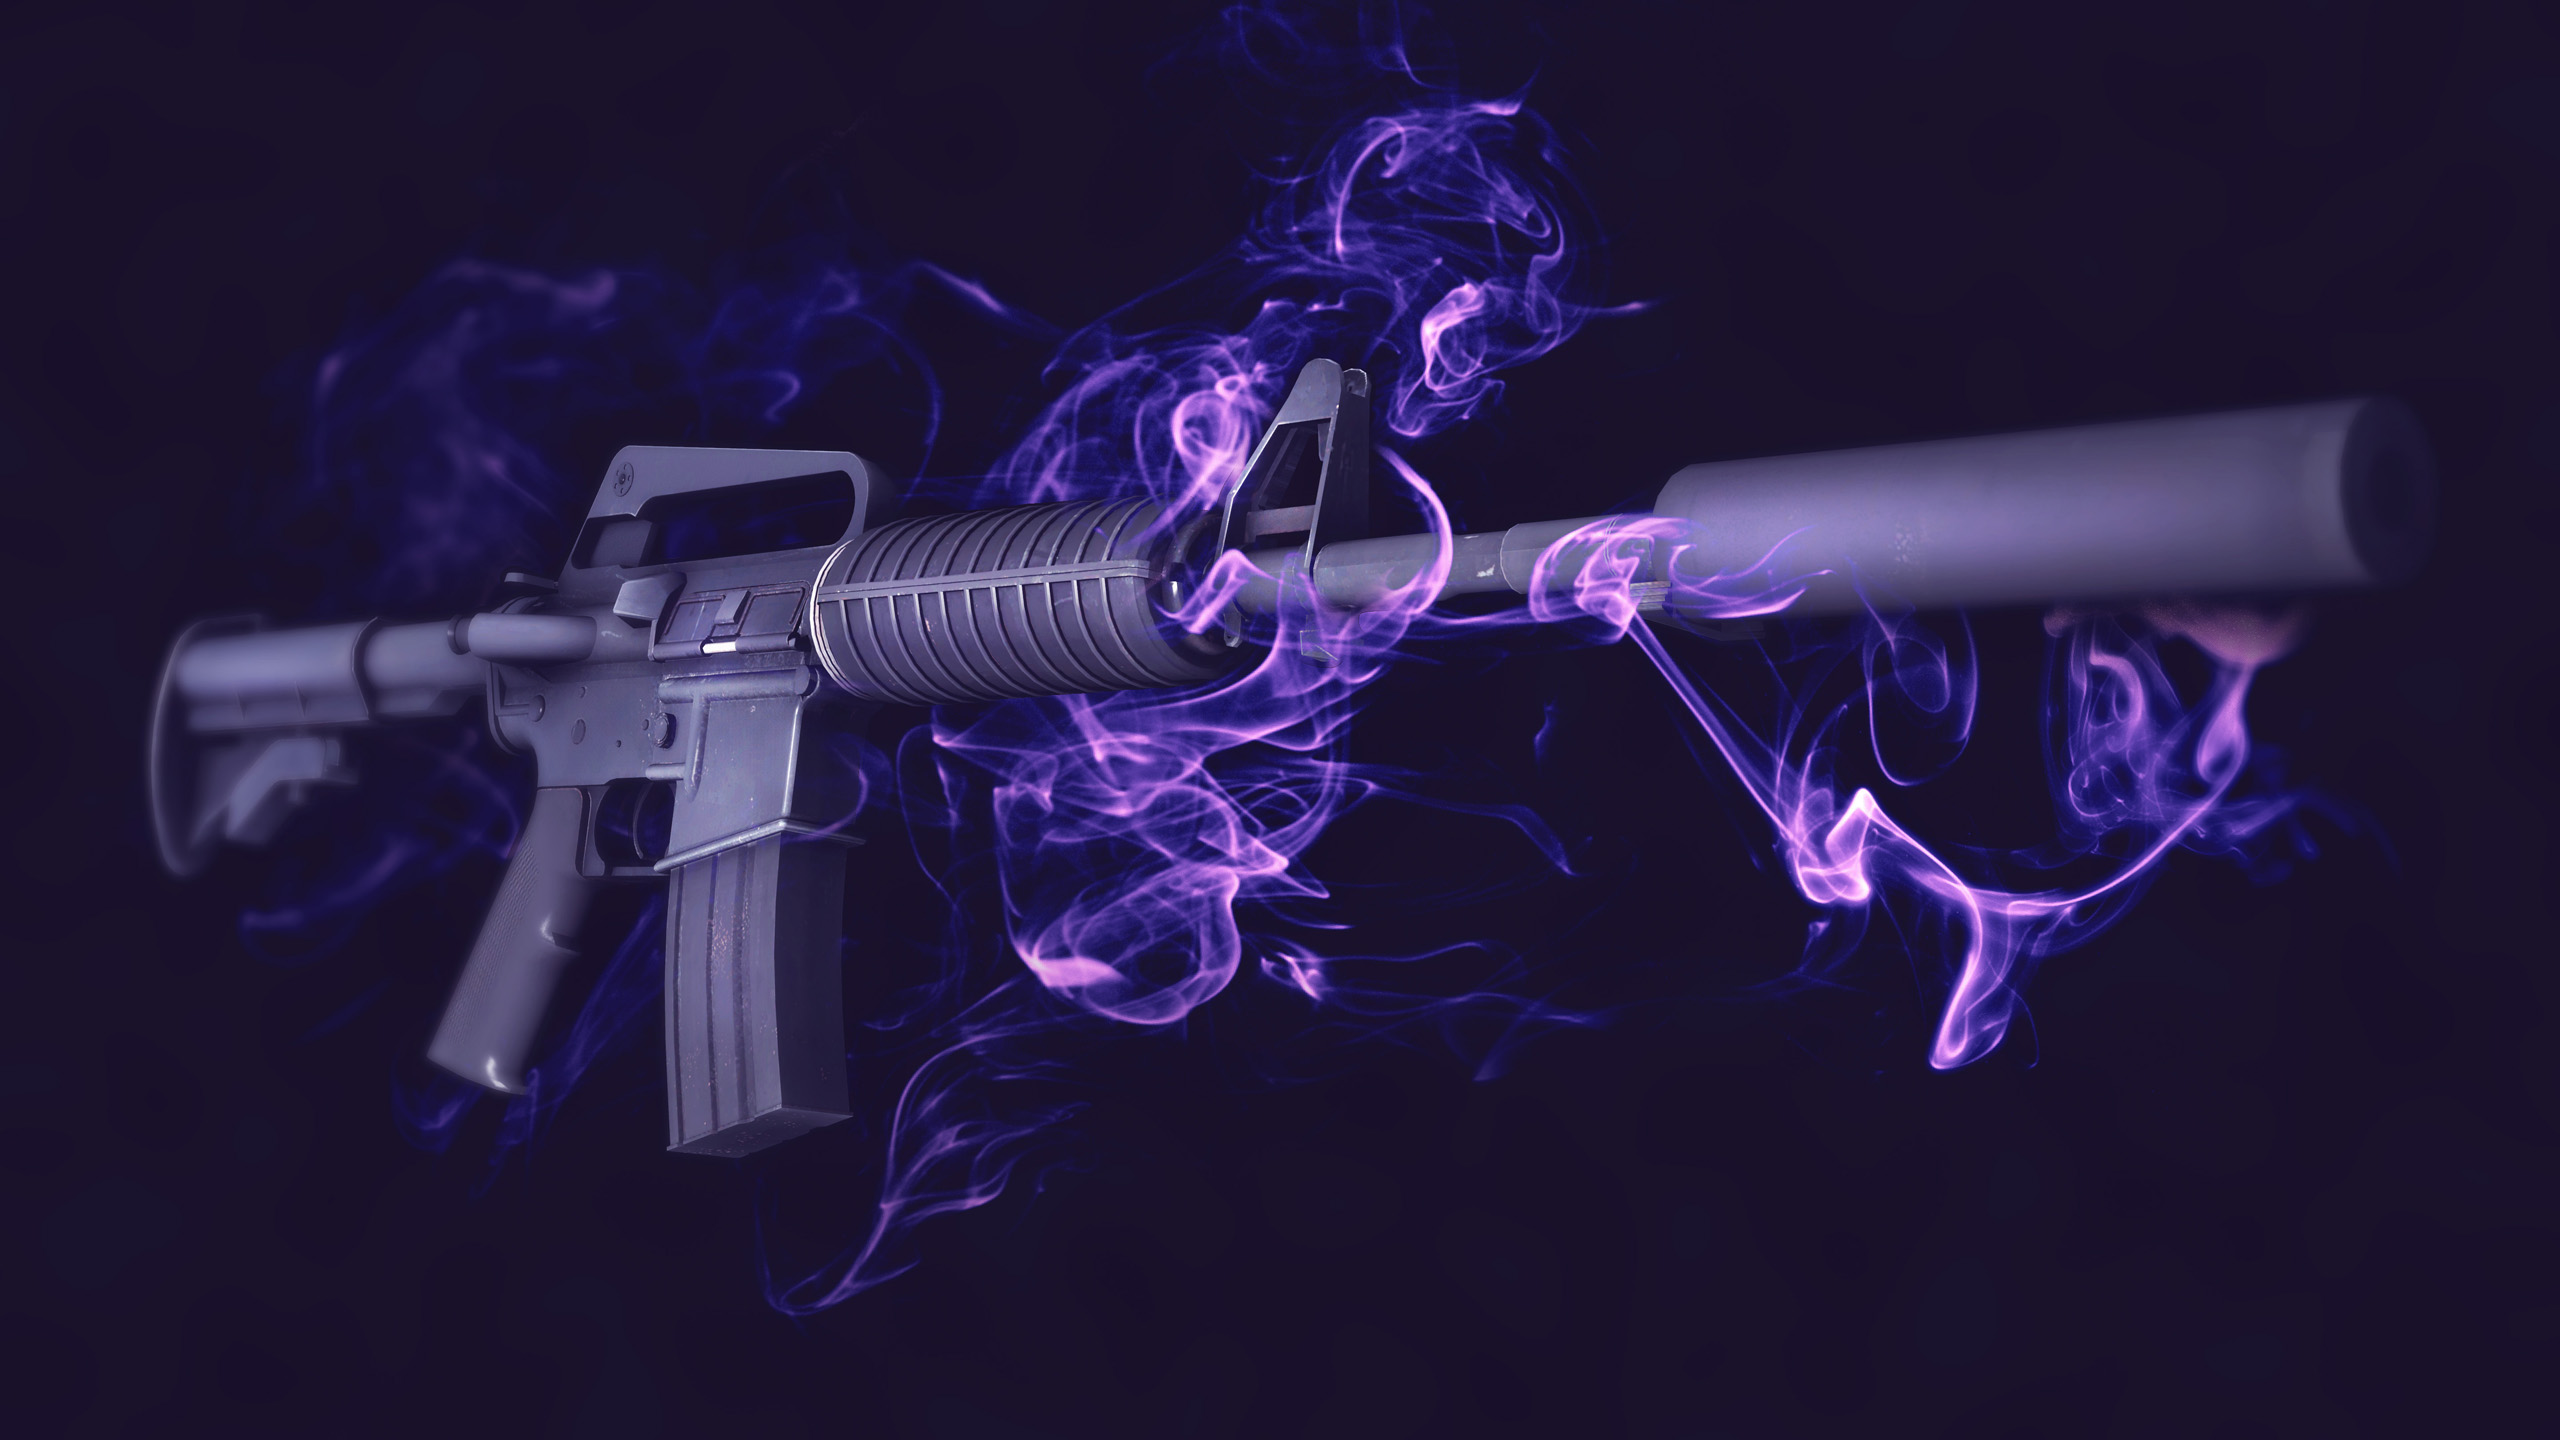 m4a1s purple fire csgo wallpapers and backgrounds